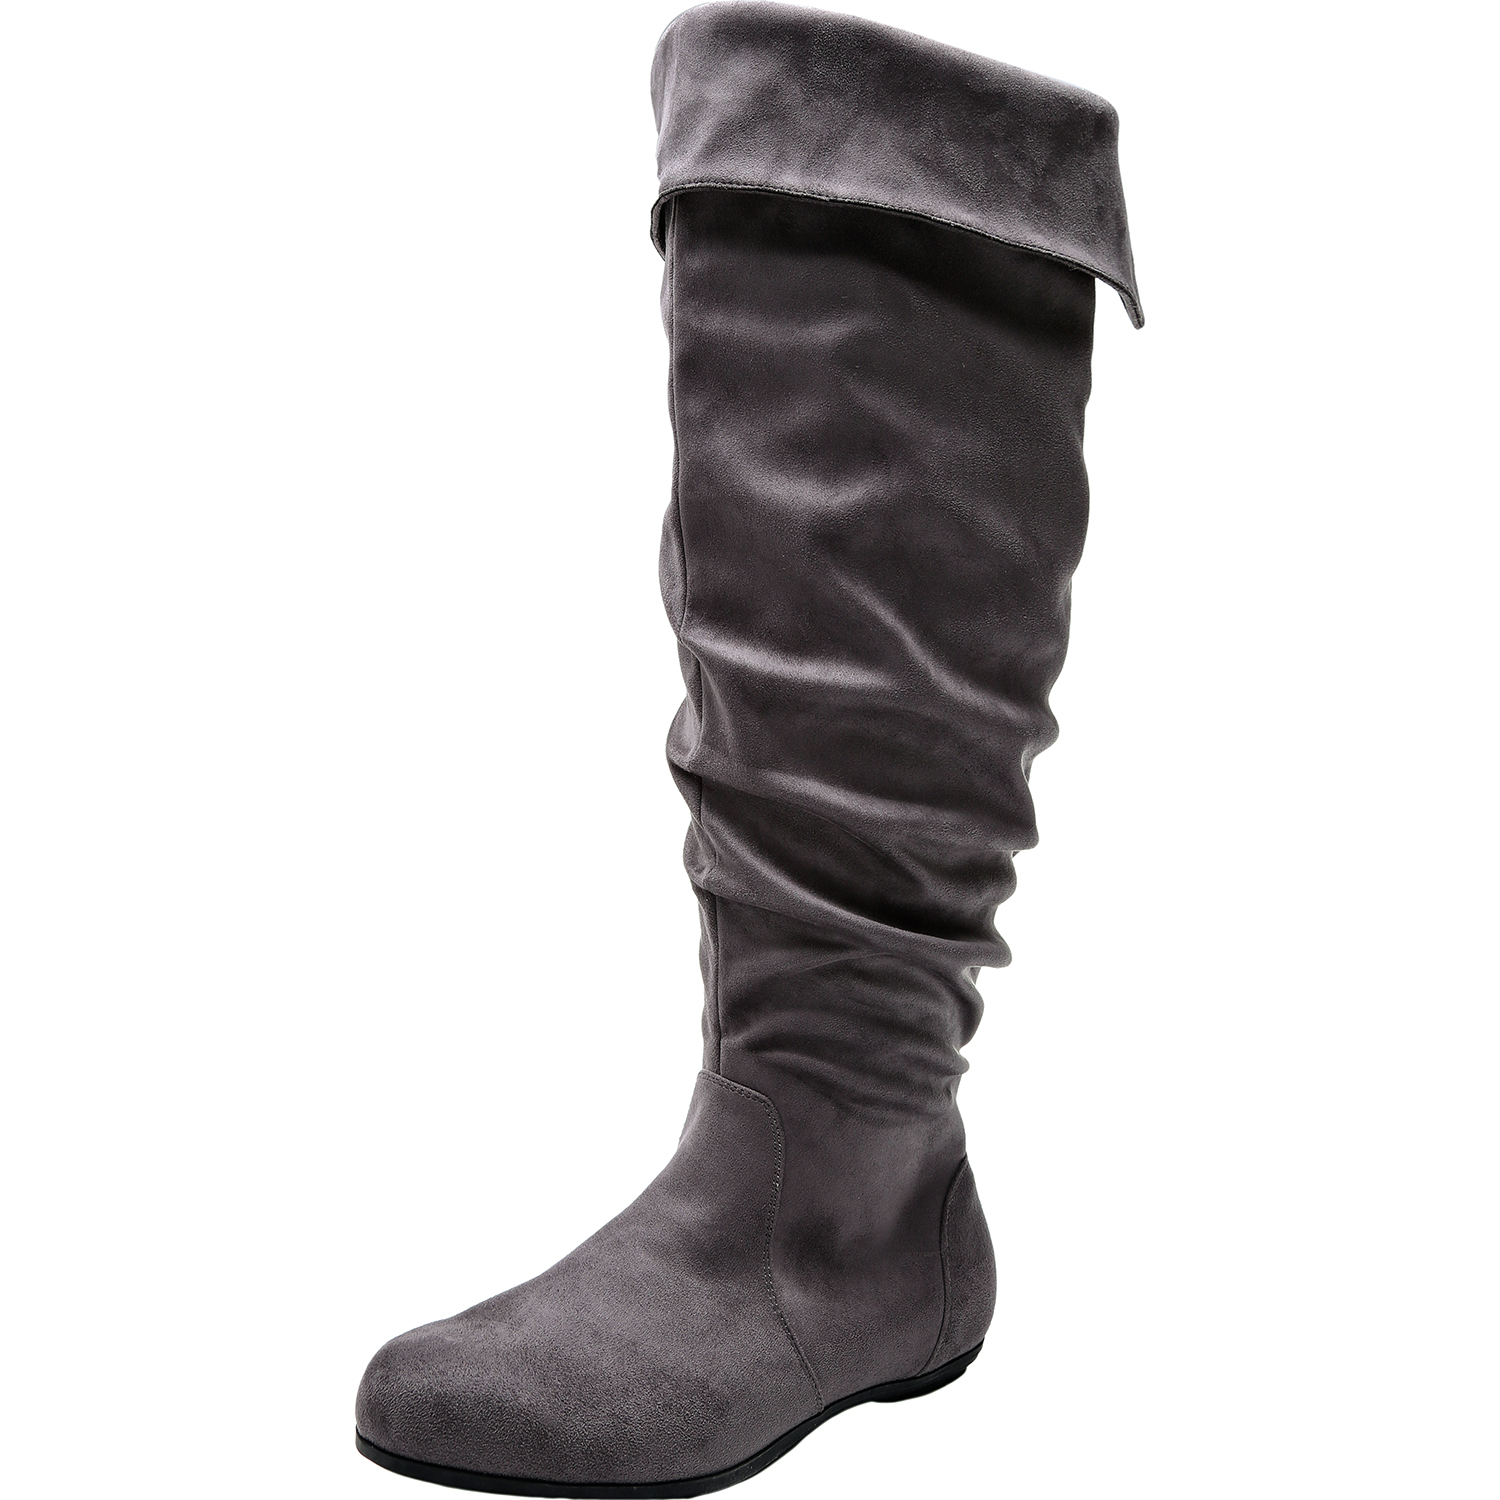 8a1960c78d4 US  69.99 - Women s Wide Width Knee High Slouch Boots - Stretchy Side  Zipper Cushioned Lining Winter Flat Boots.(Extra Wide Calf) -  www.luoika-us.com